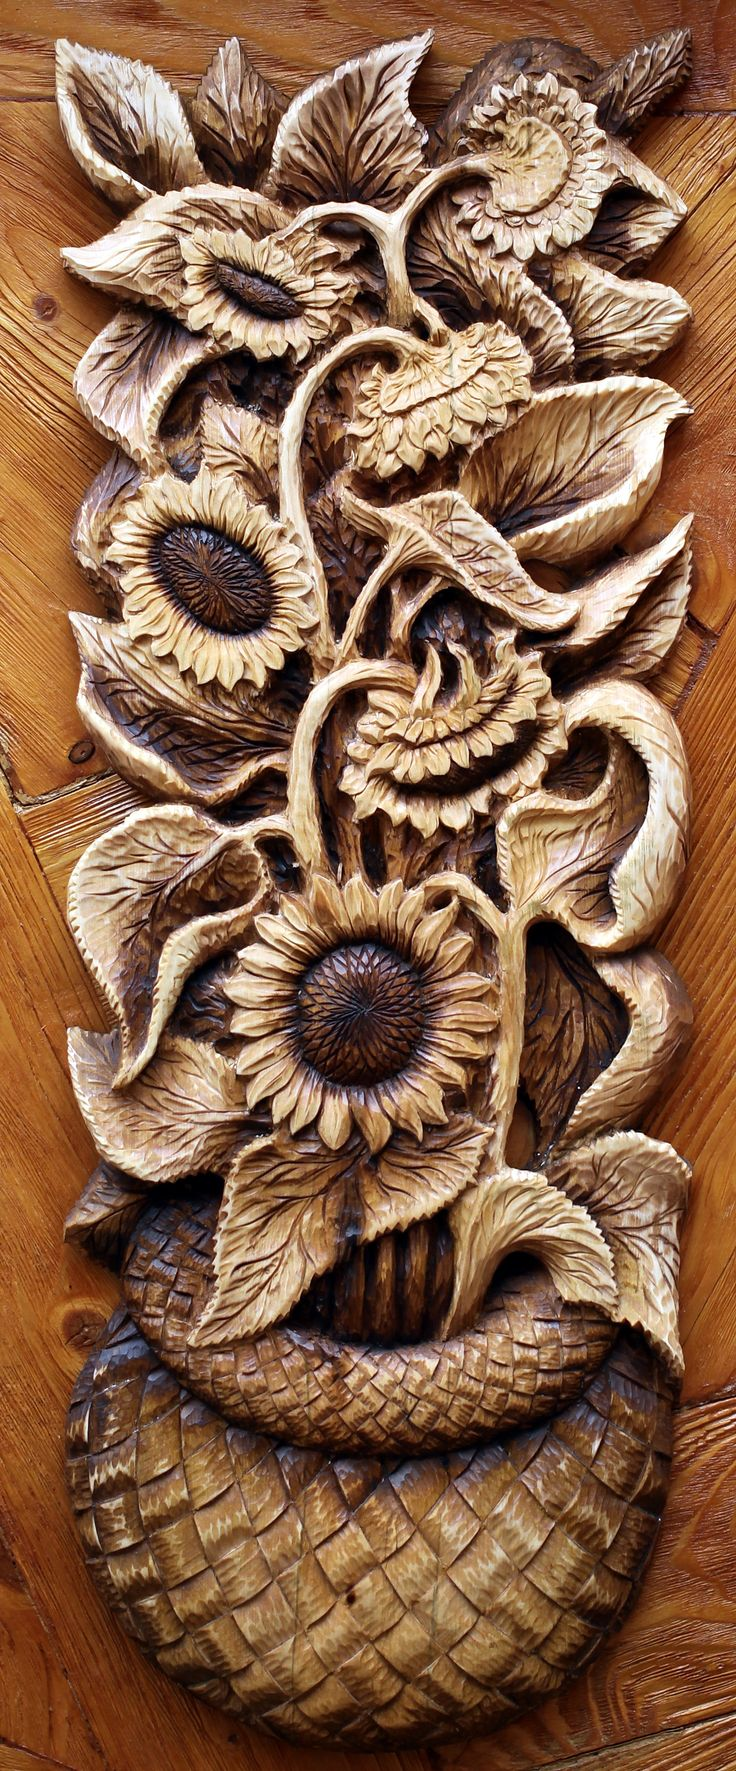 Carved Sunflowers in a basket.